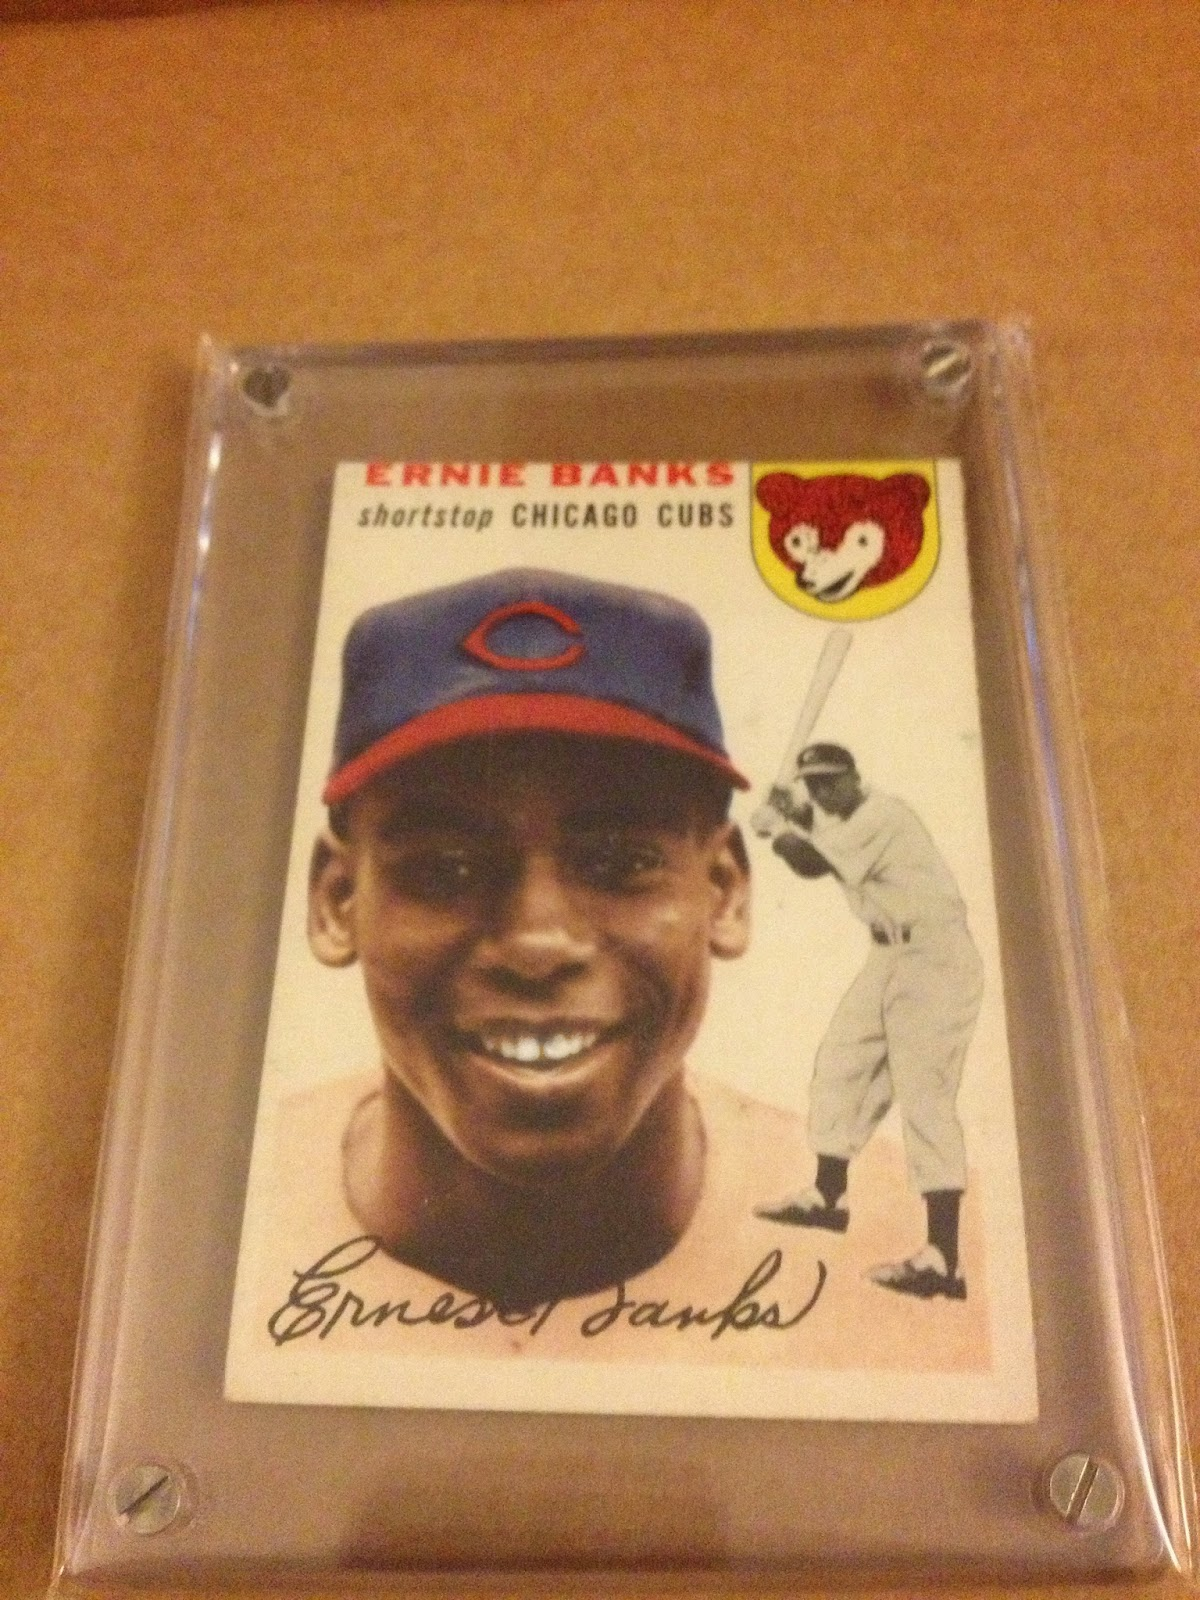 The Birth Of A New Small Project Ernie Banks Cheap Wax